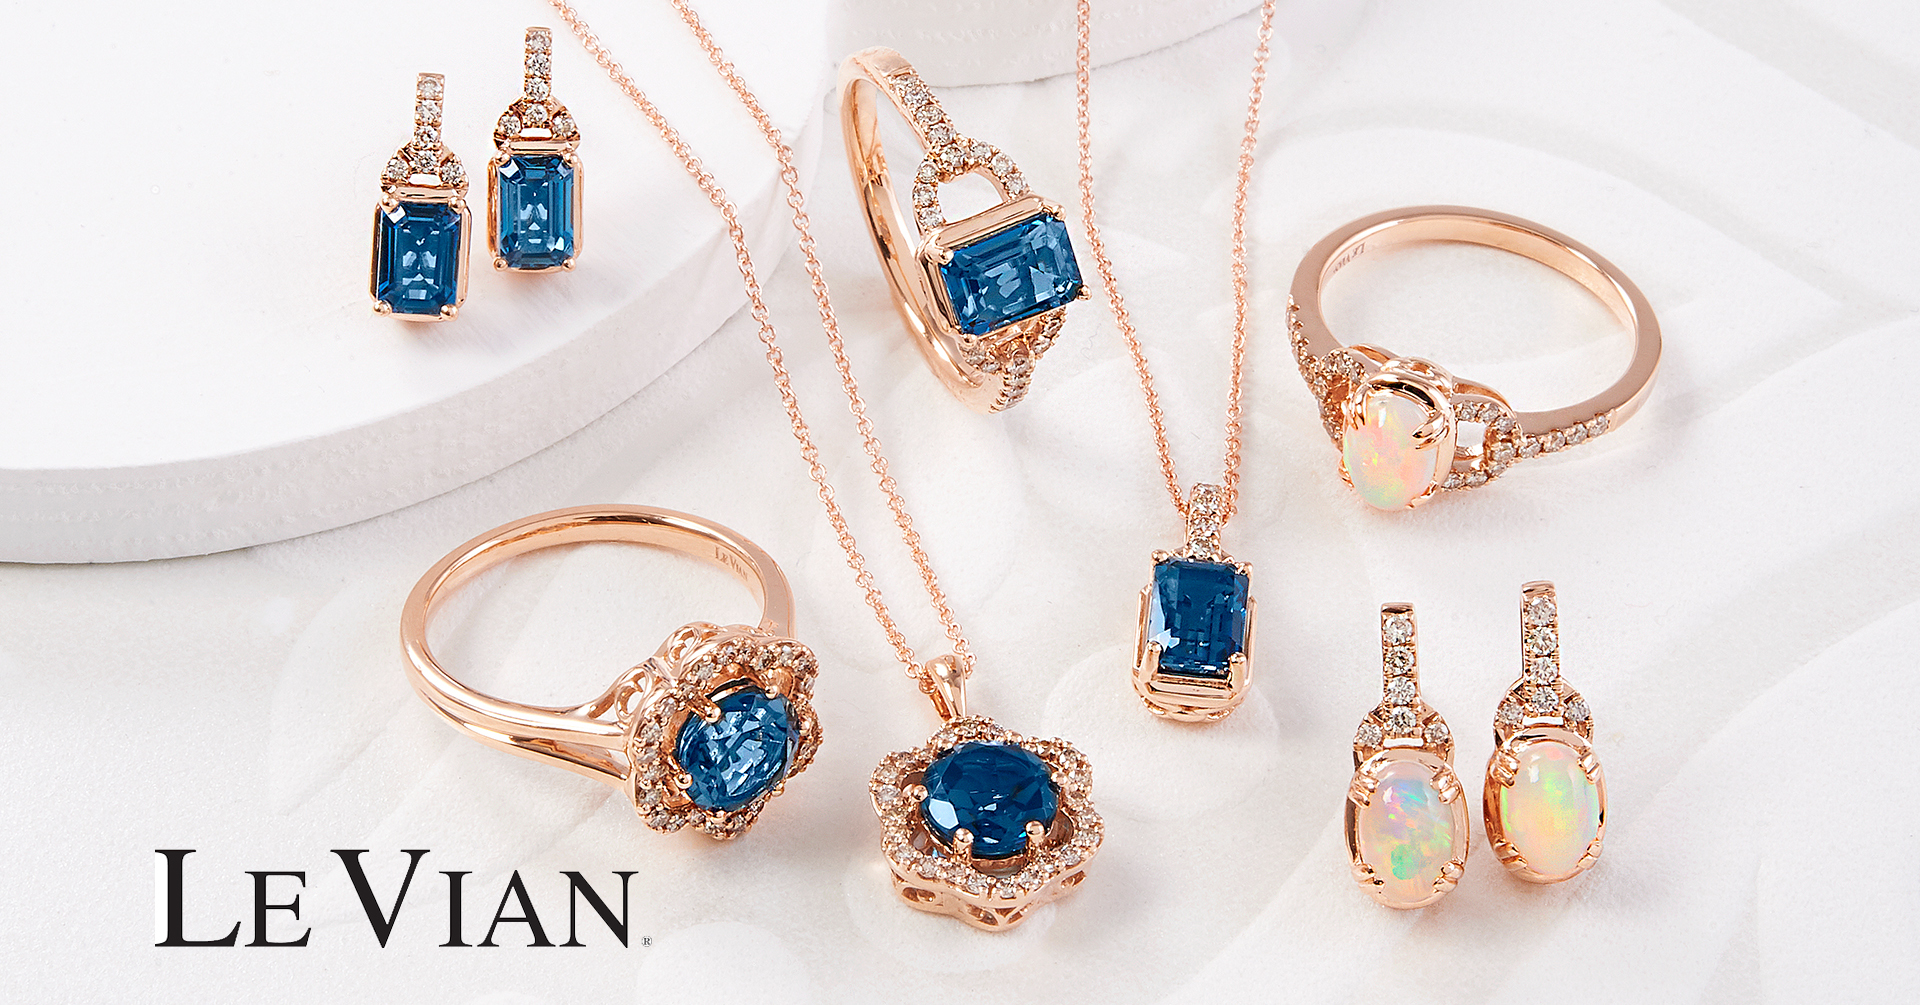 Le Vian rose gold and blue gemstone jewelry